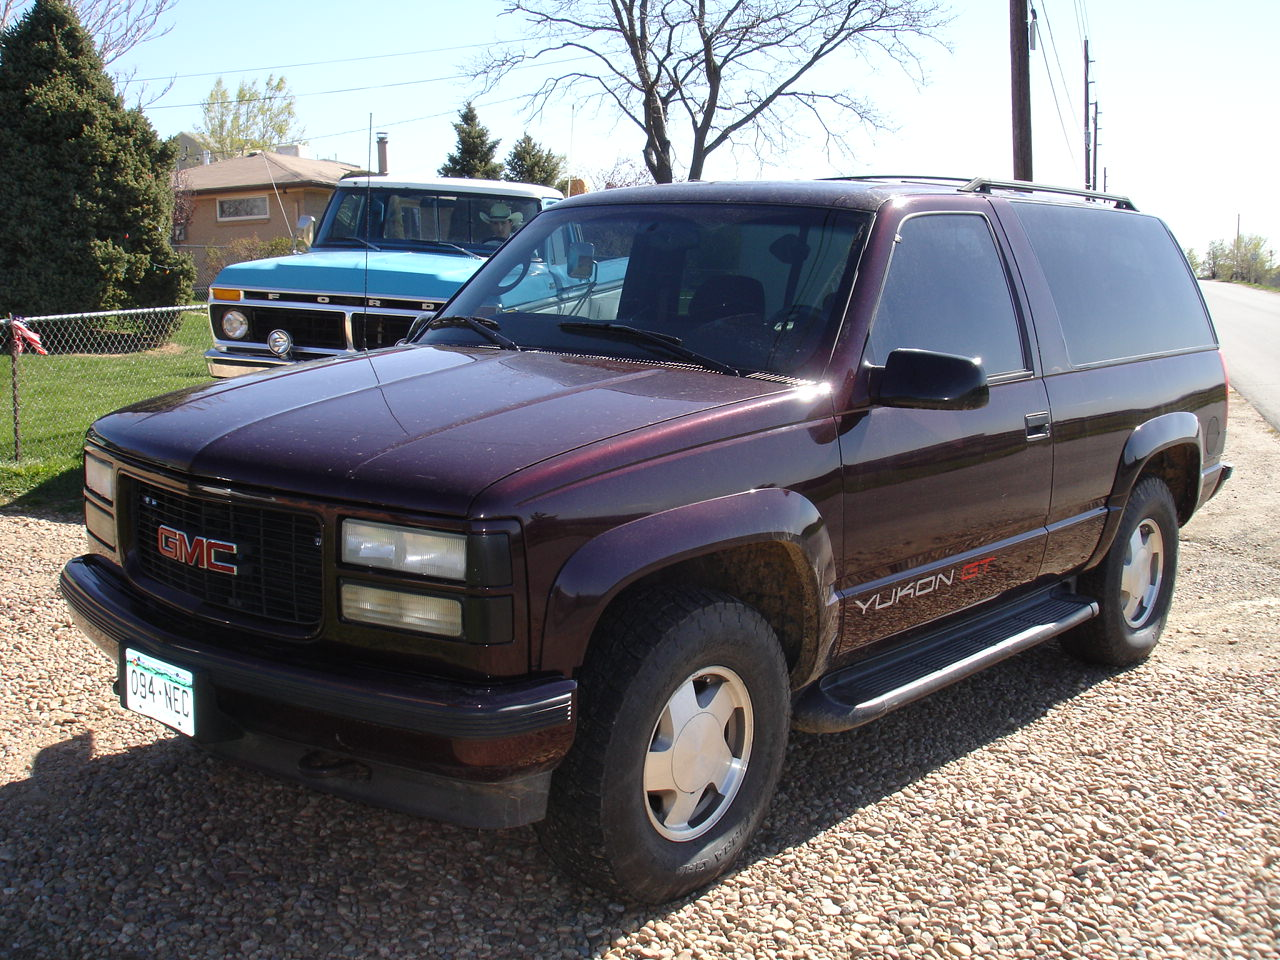 Picture of 2000 GMC Yukon XL